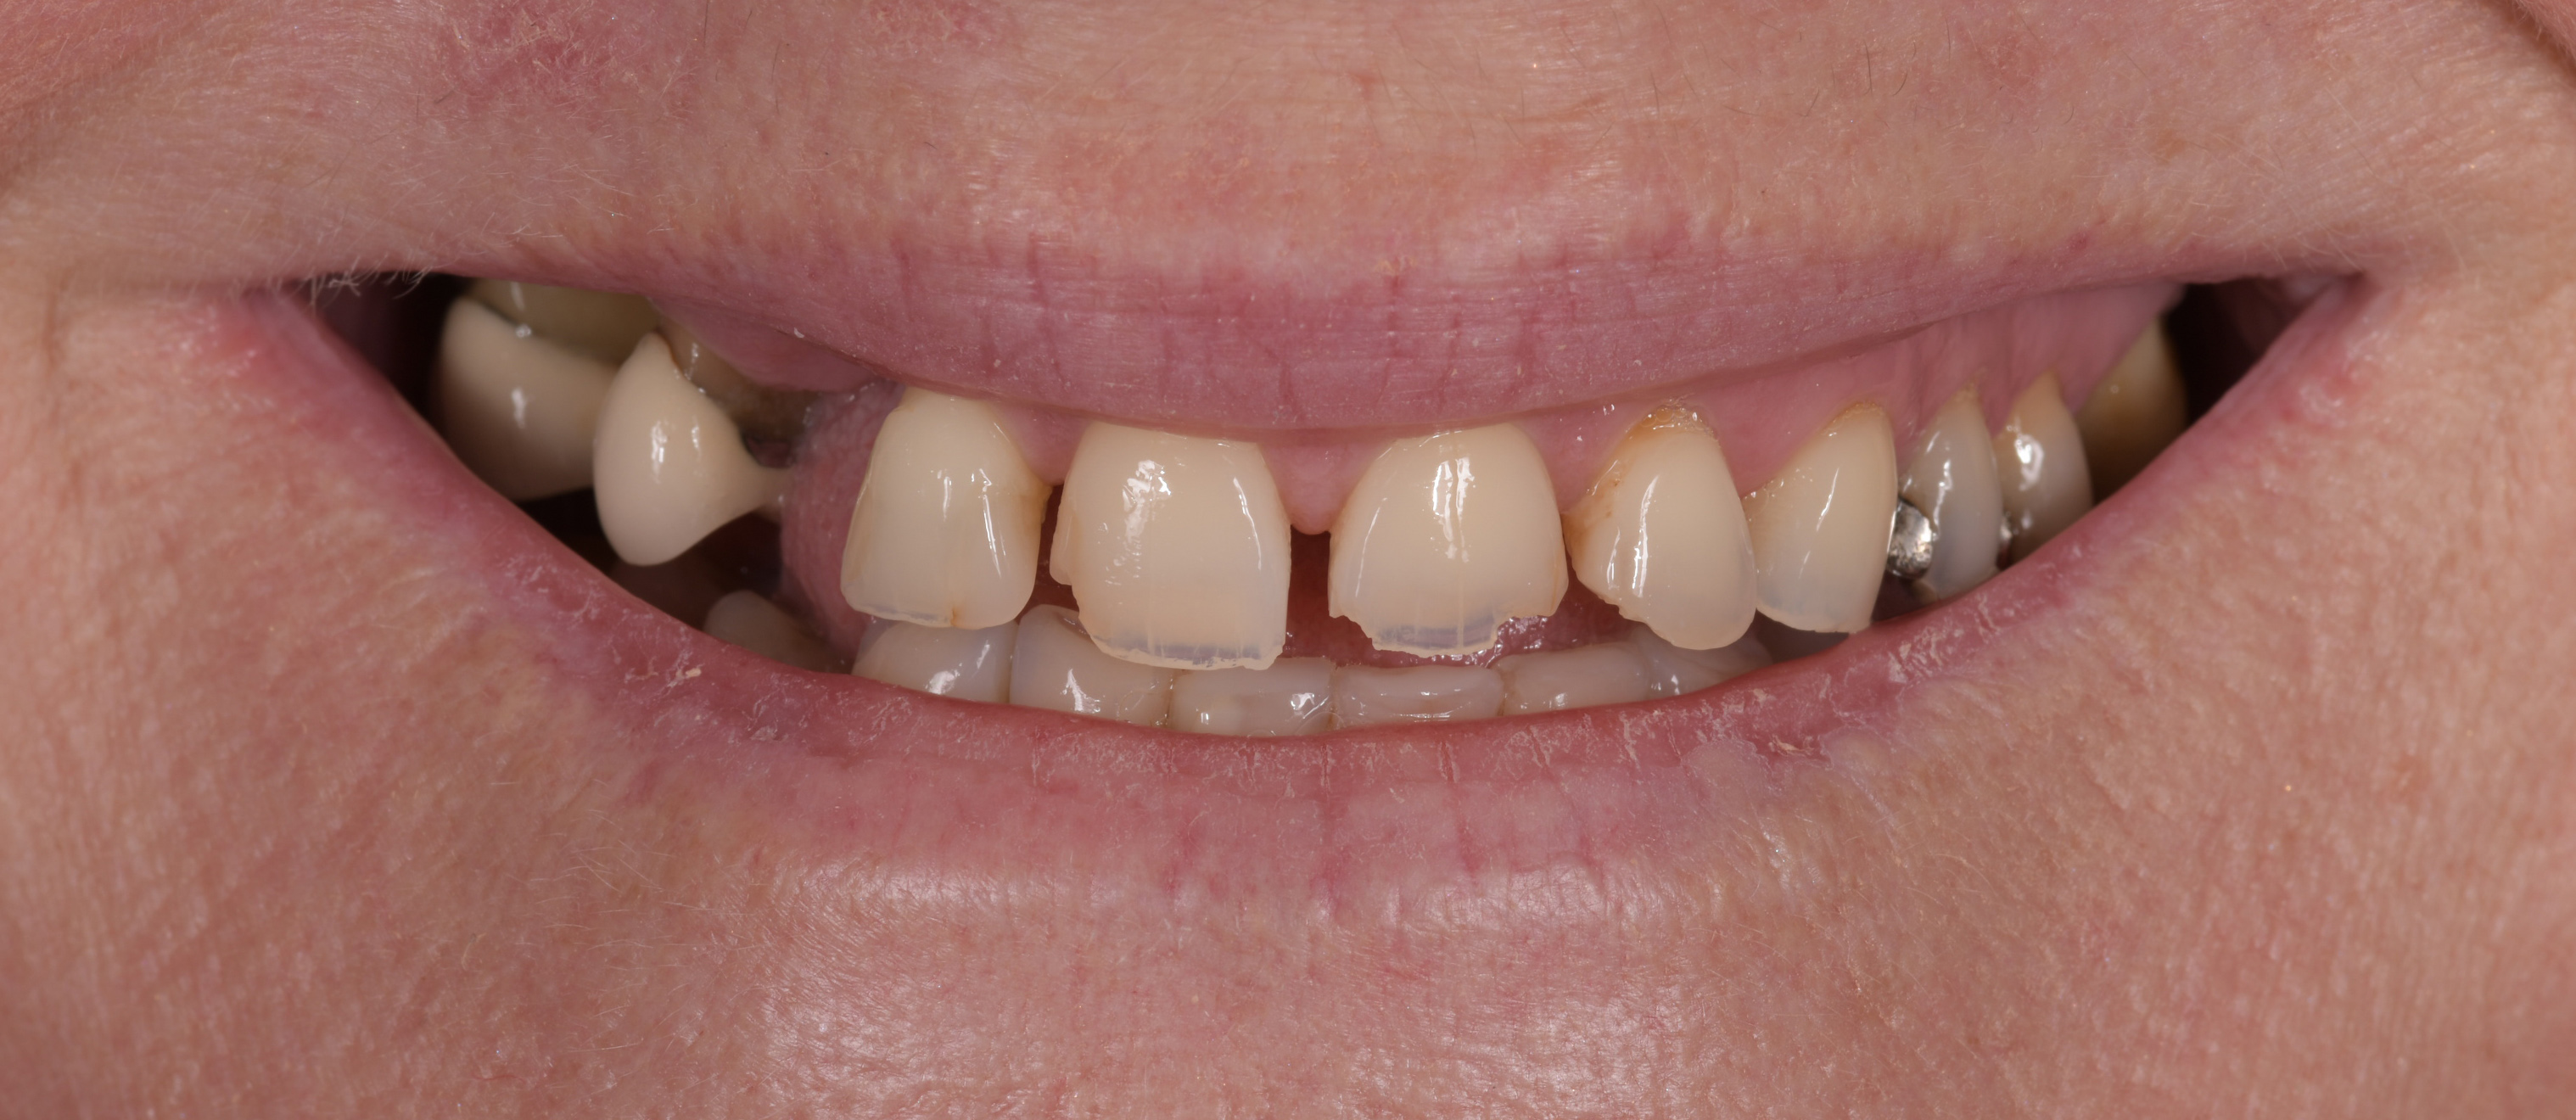 Worn down teeth to be fixed with dental crowns